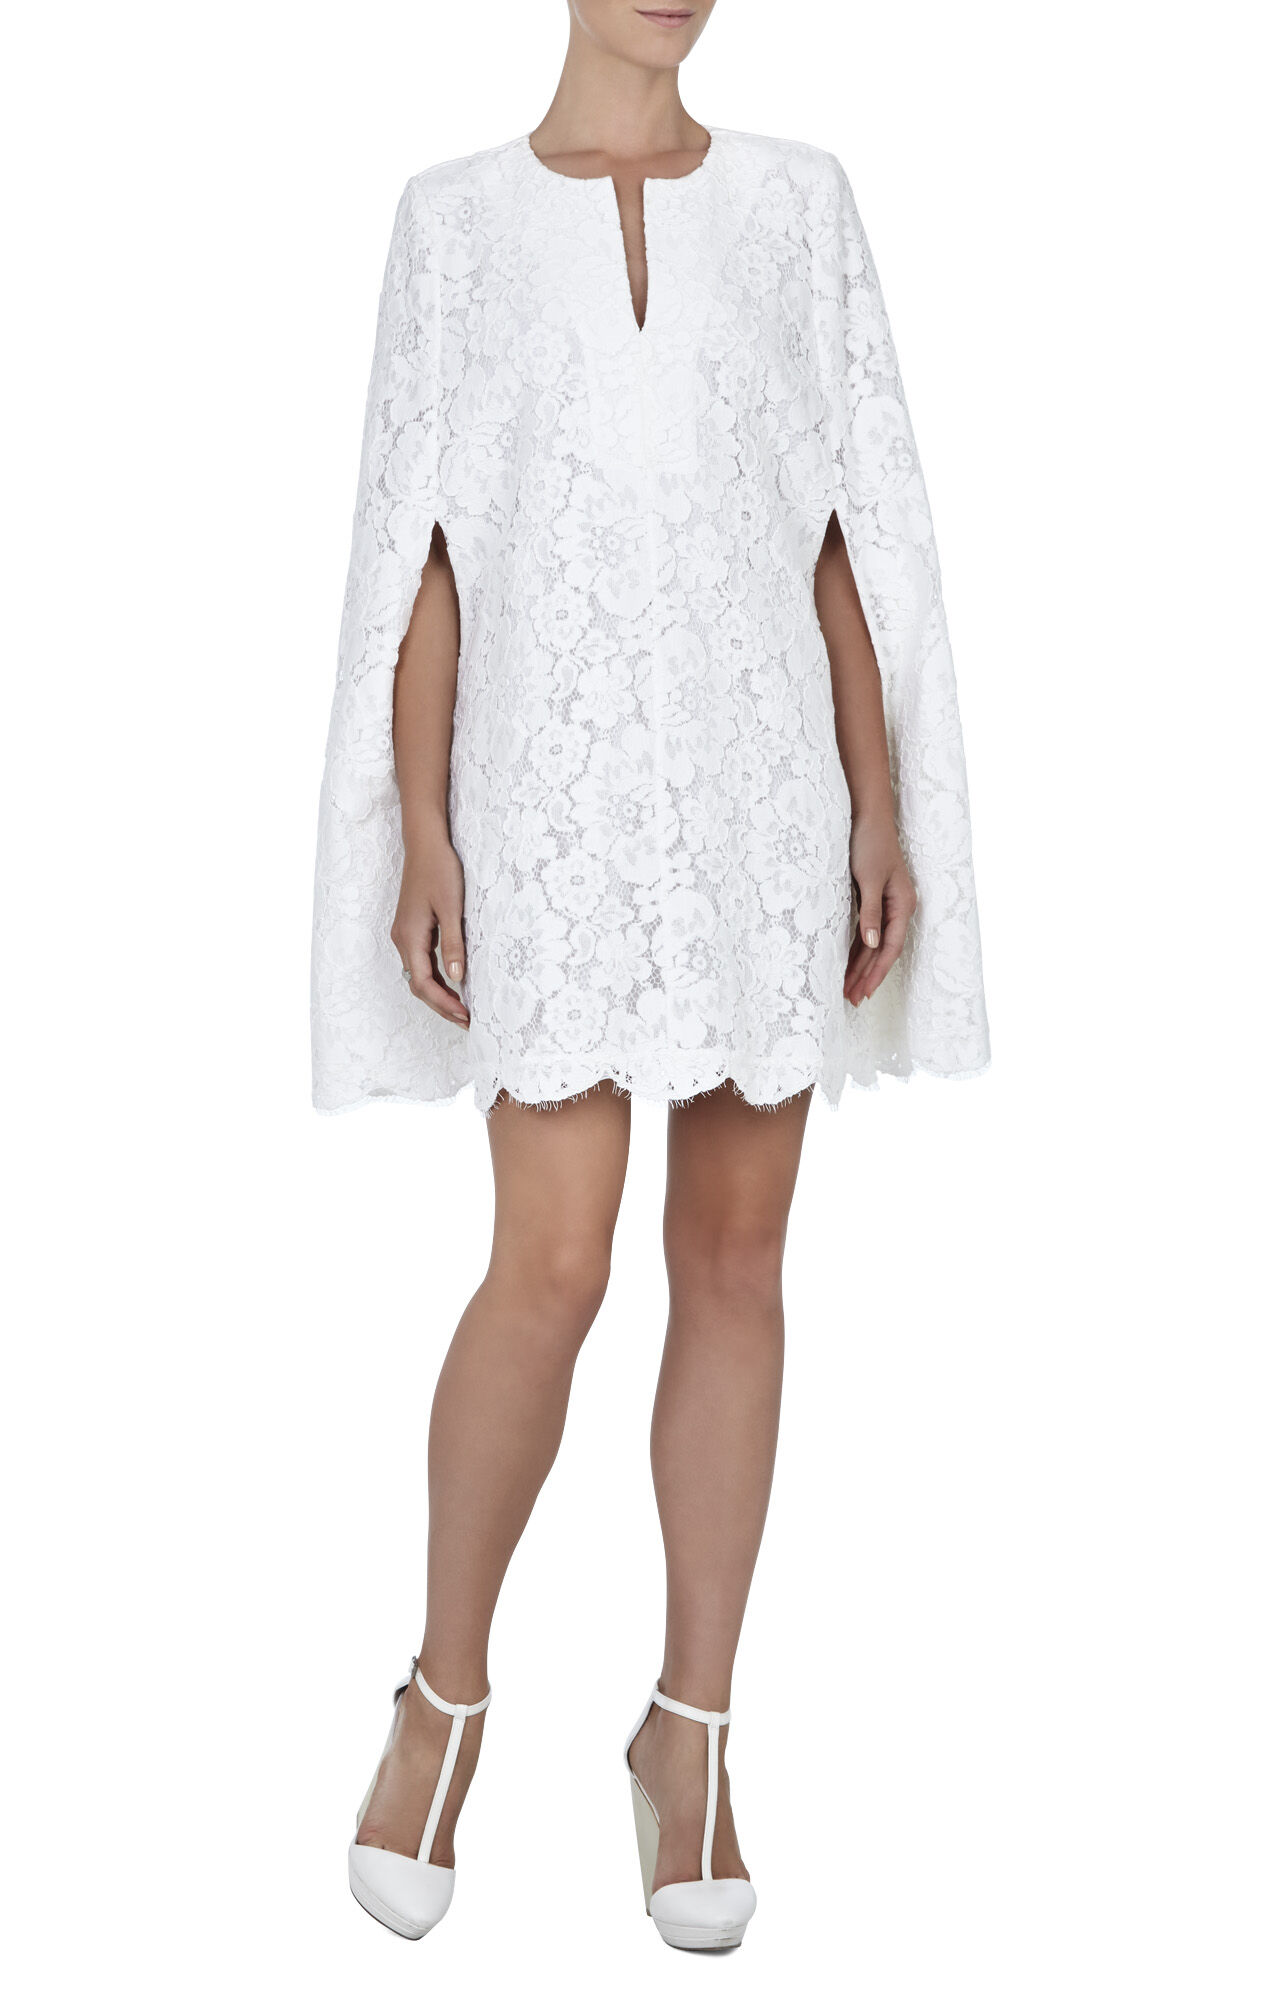 BCBG Max Azria Lace Cape Dress - popsugar.com